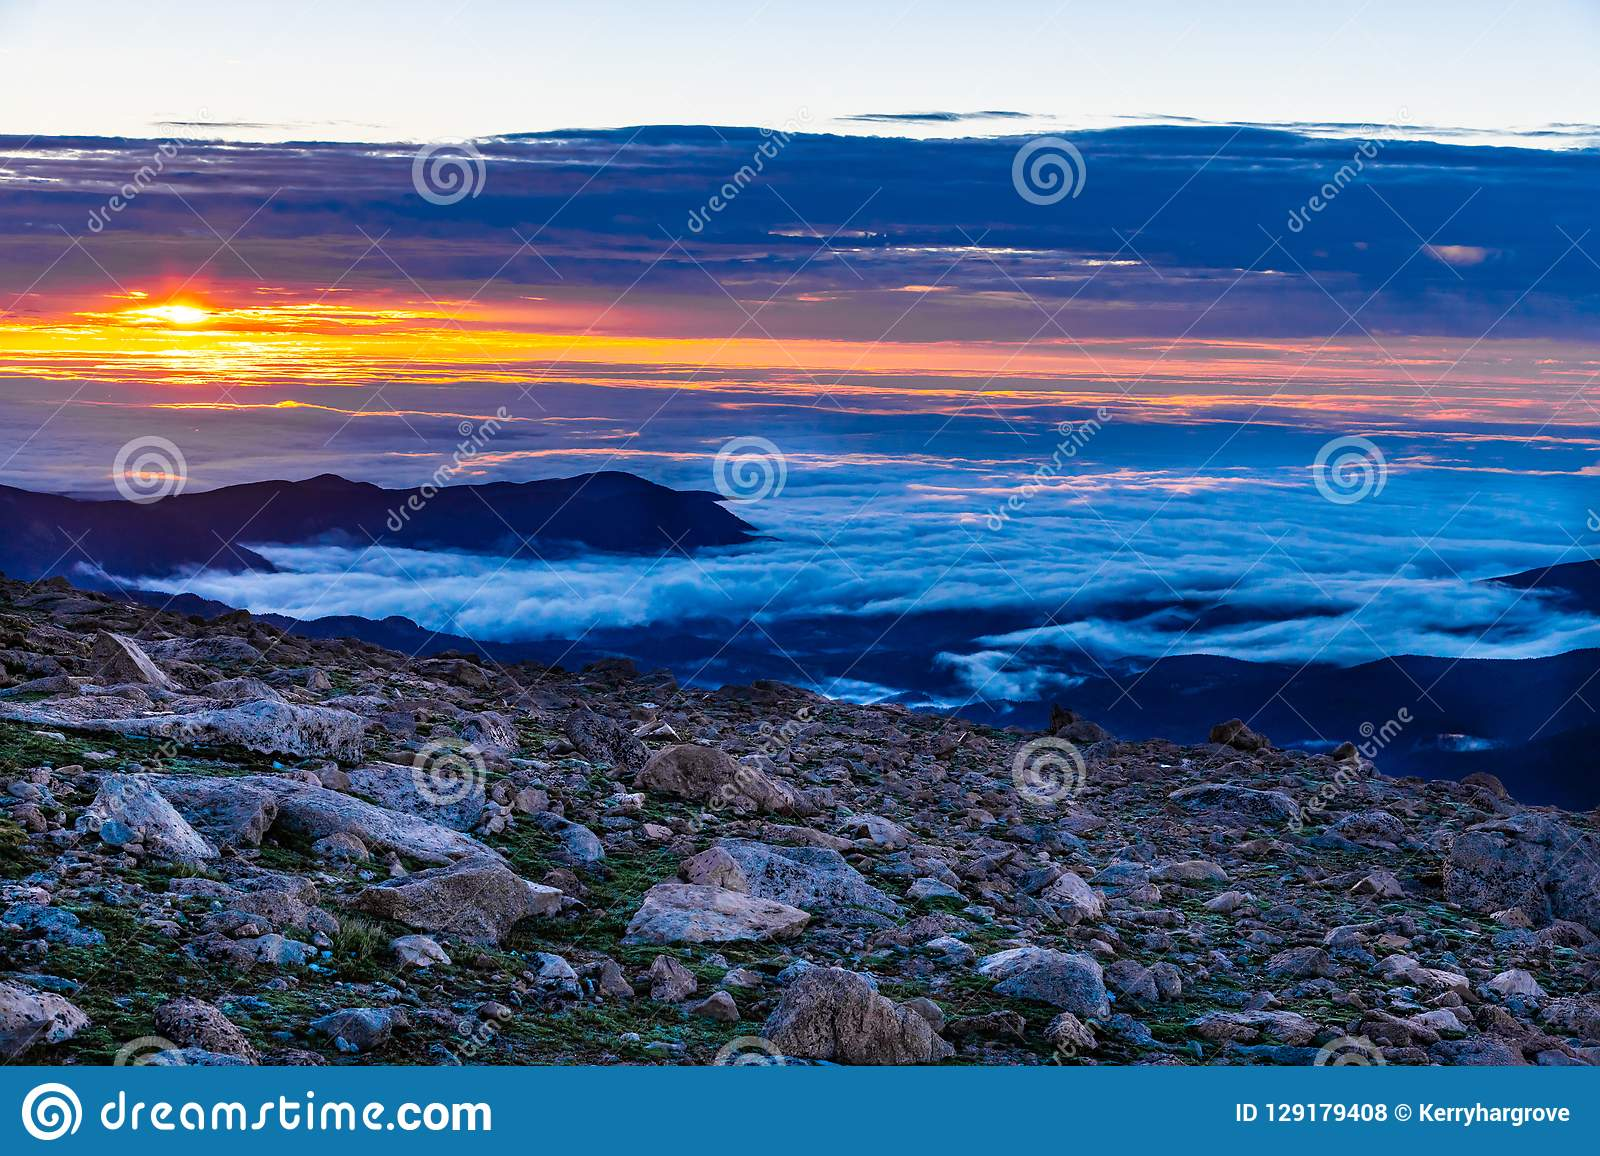 Sunrise on Top of the Clouds